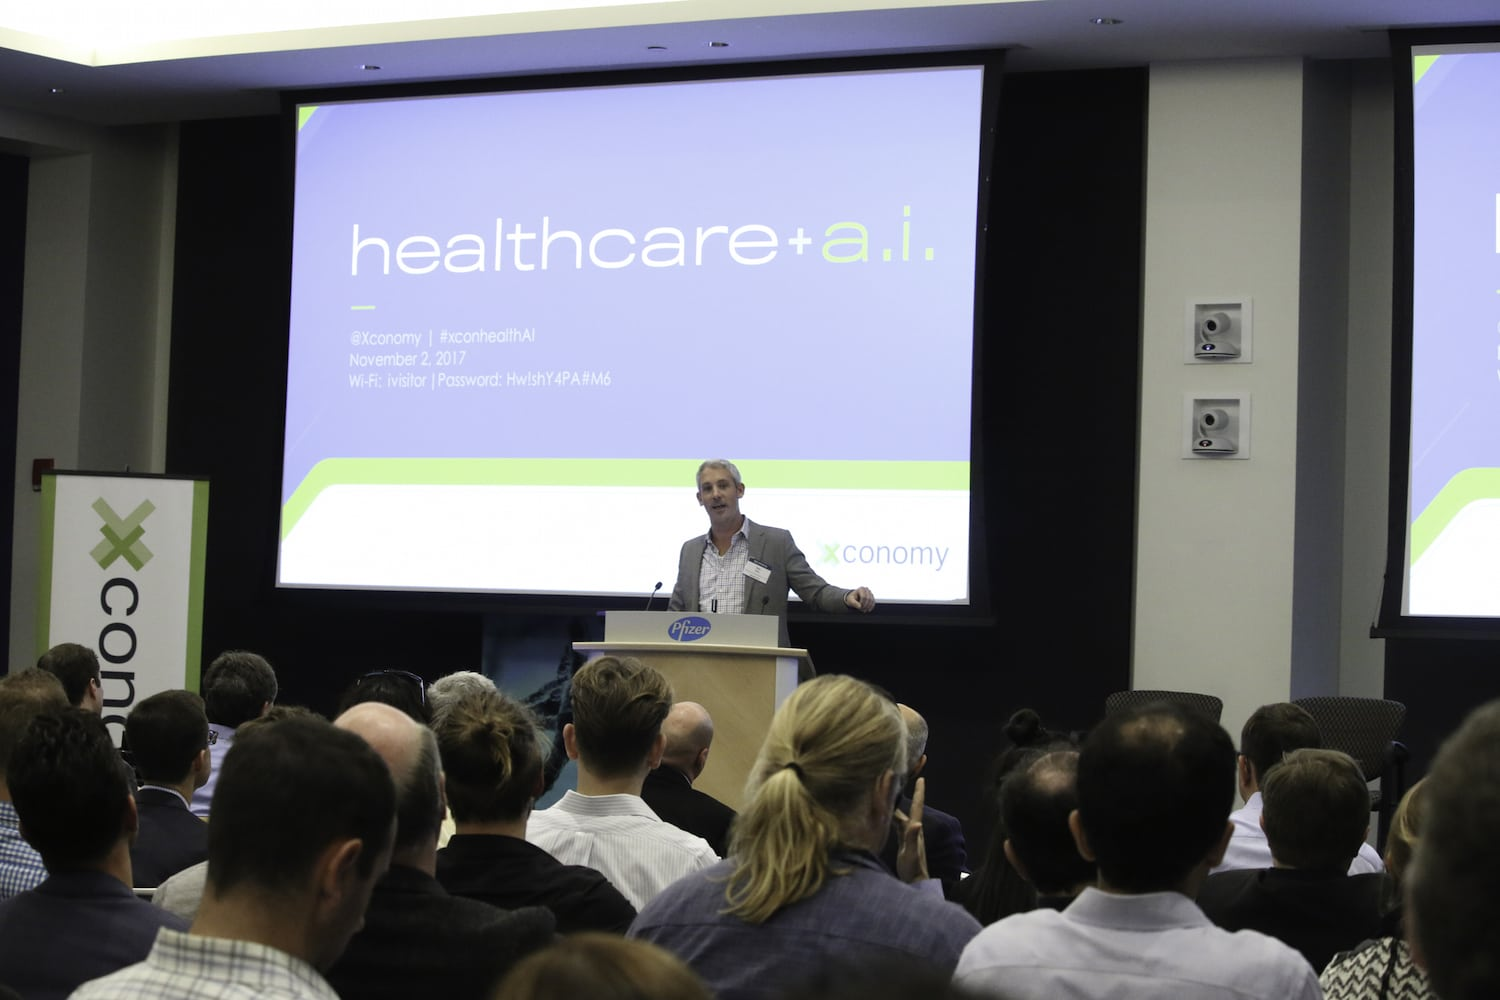 Xconomy Forum: Healthcare + A.I.